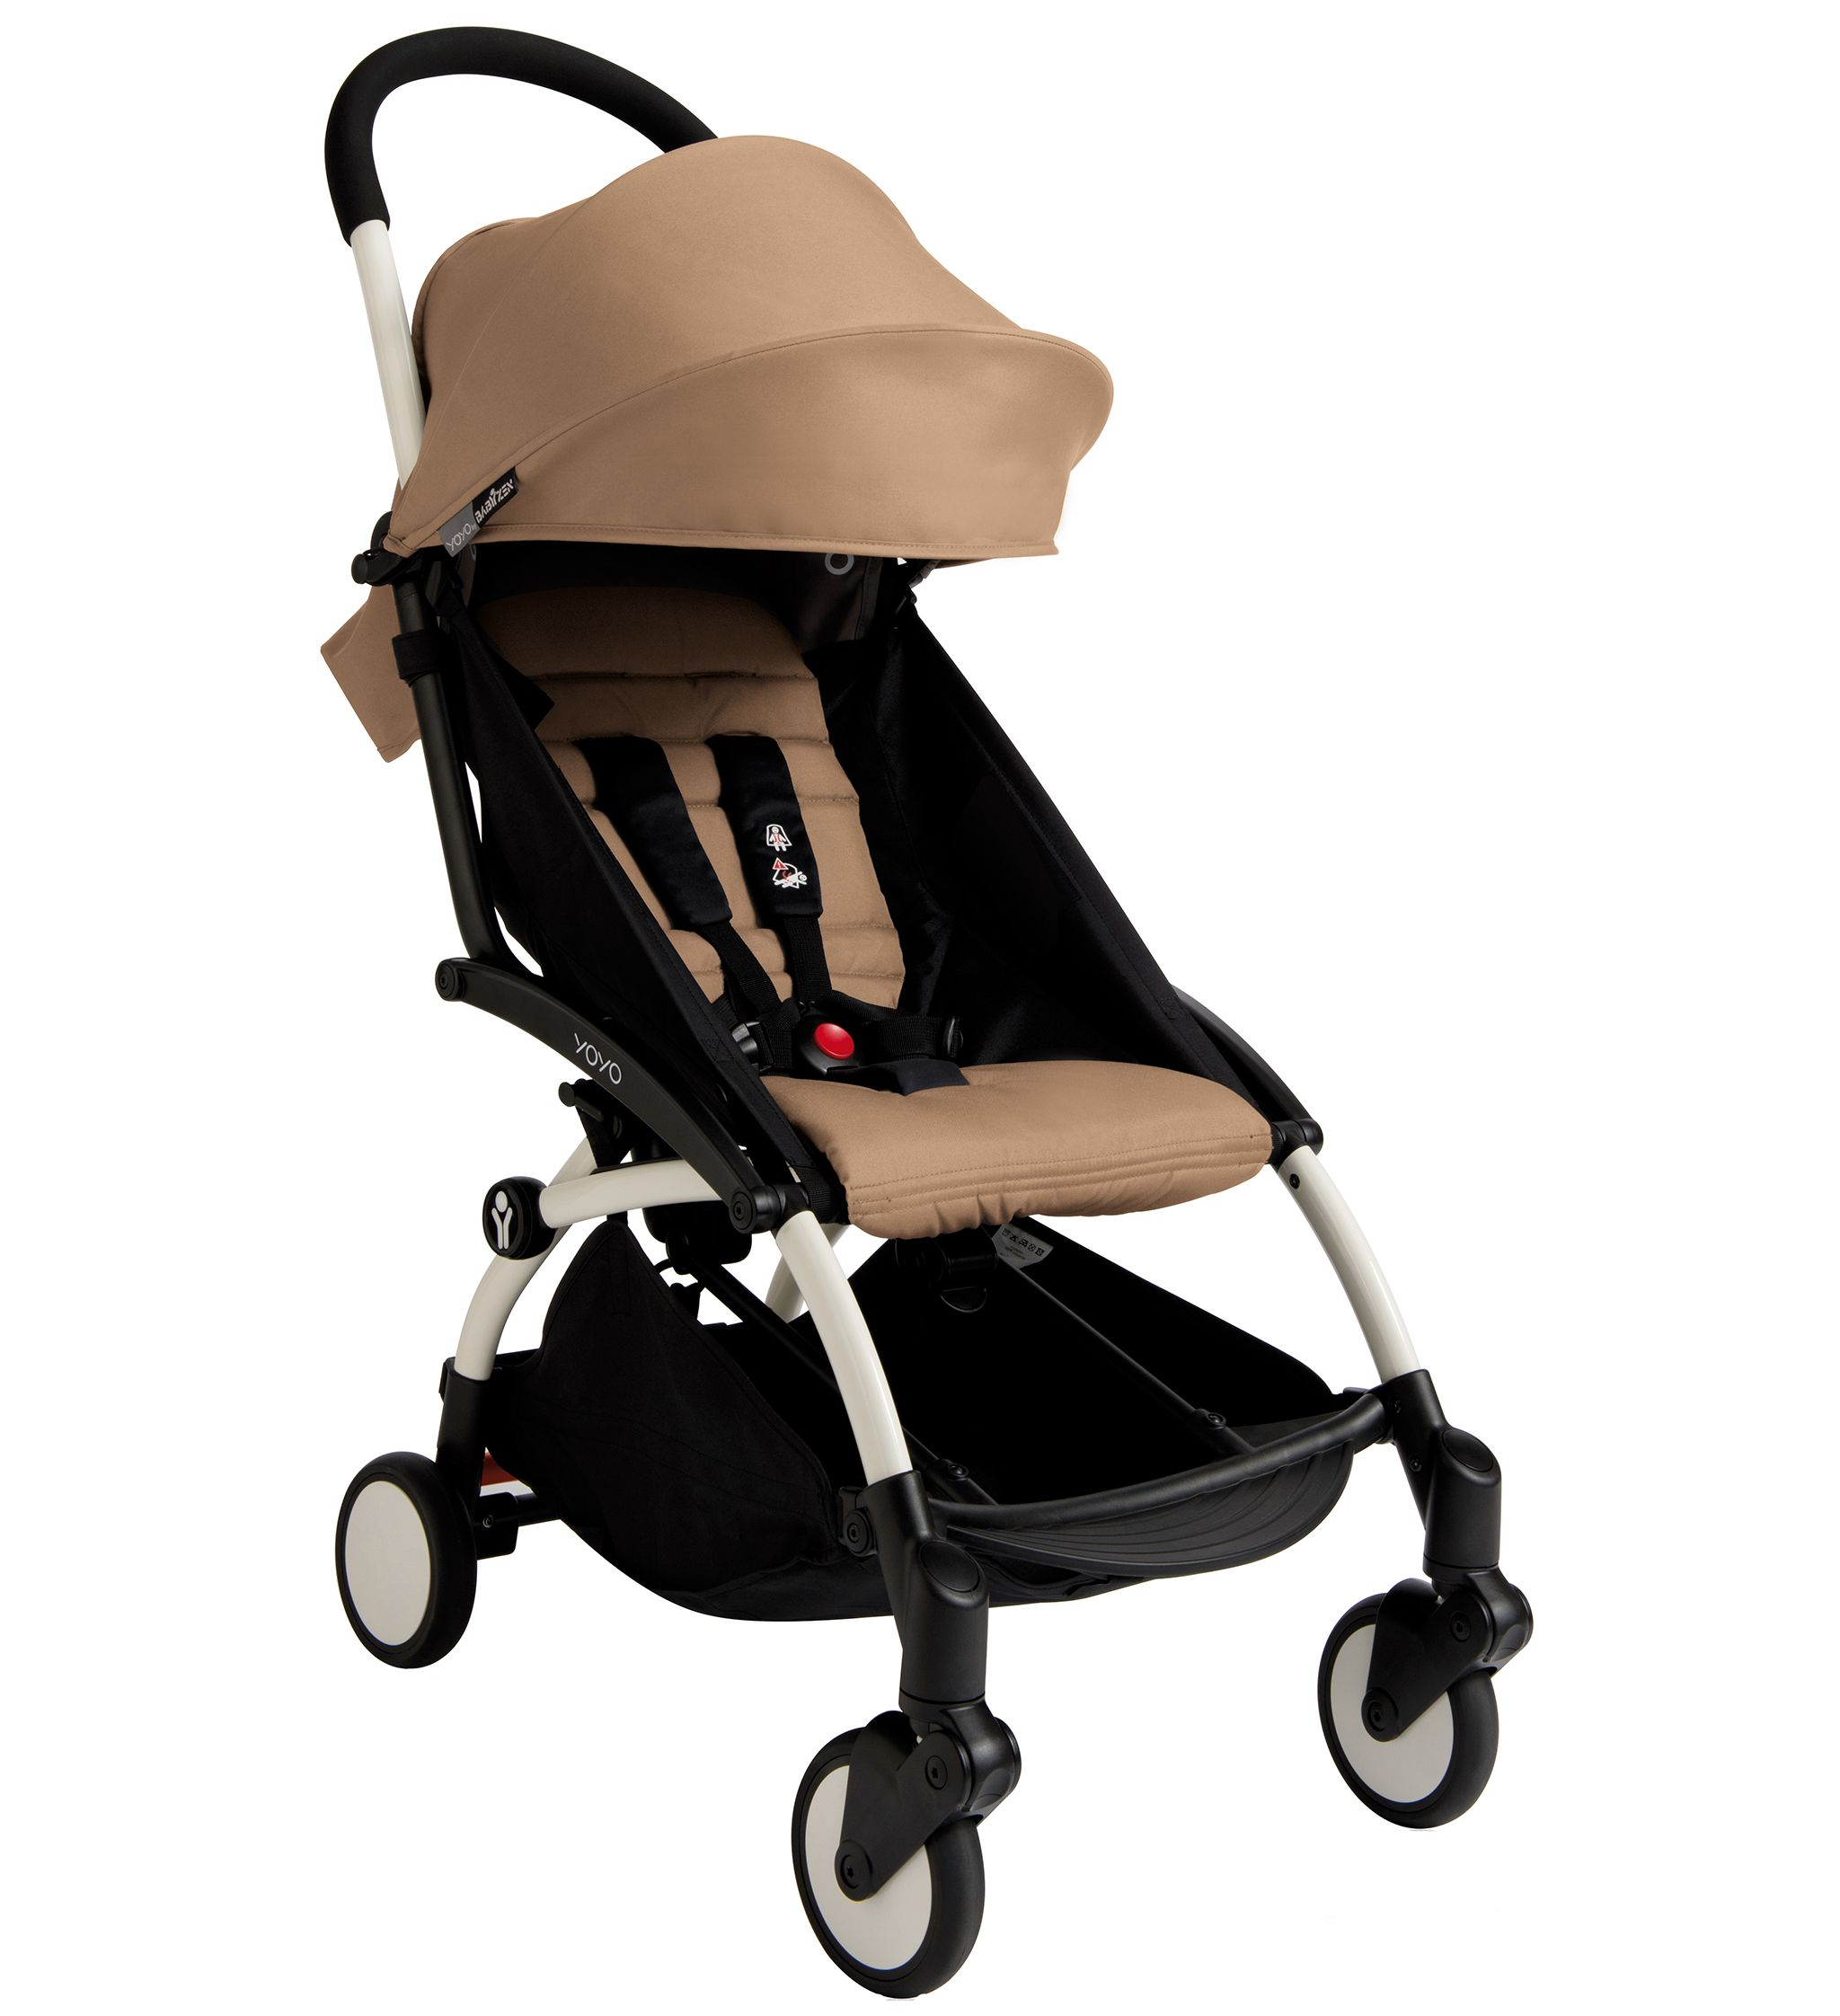 The YOYO+, A Whole Lot of Stroller in a Little Package